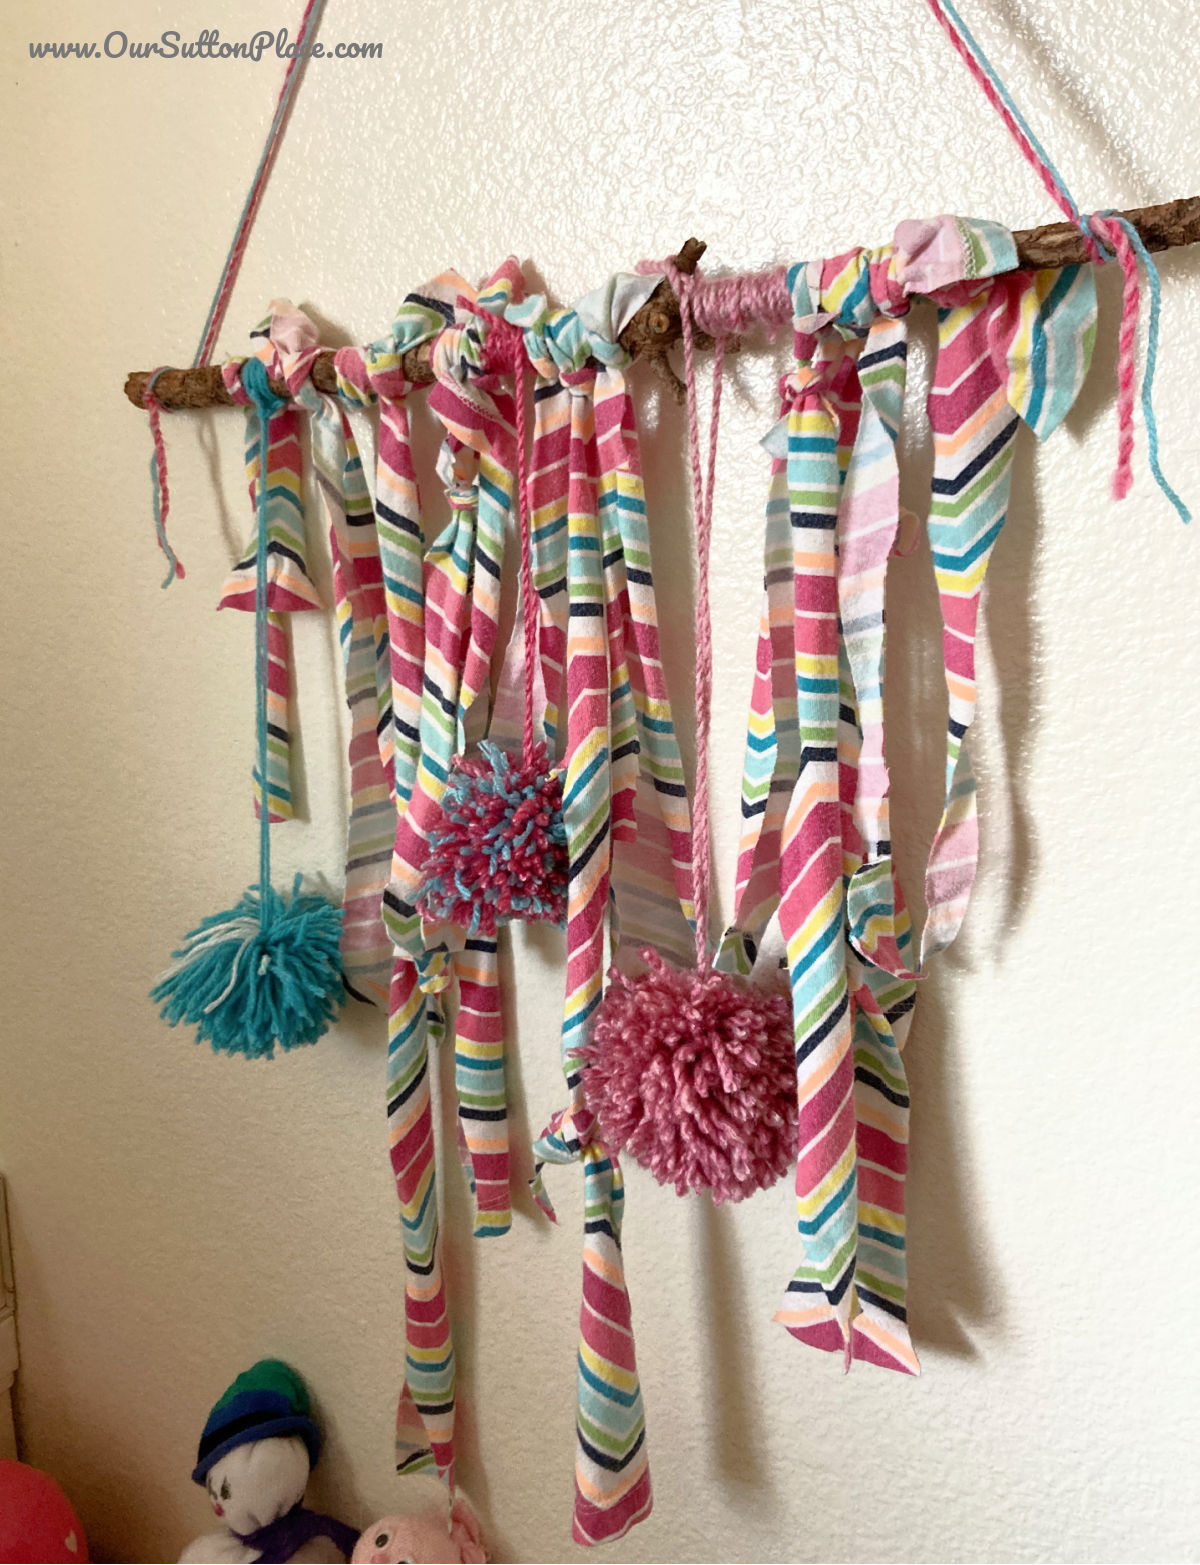 striped t-shirt fabric wall hanging with pom poms